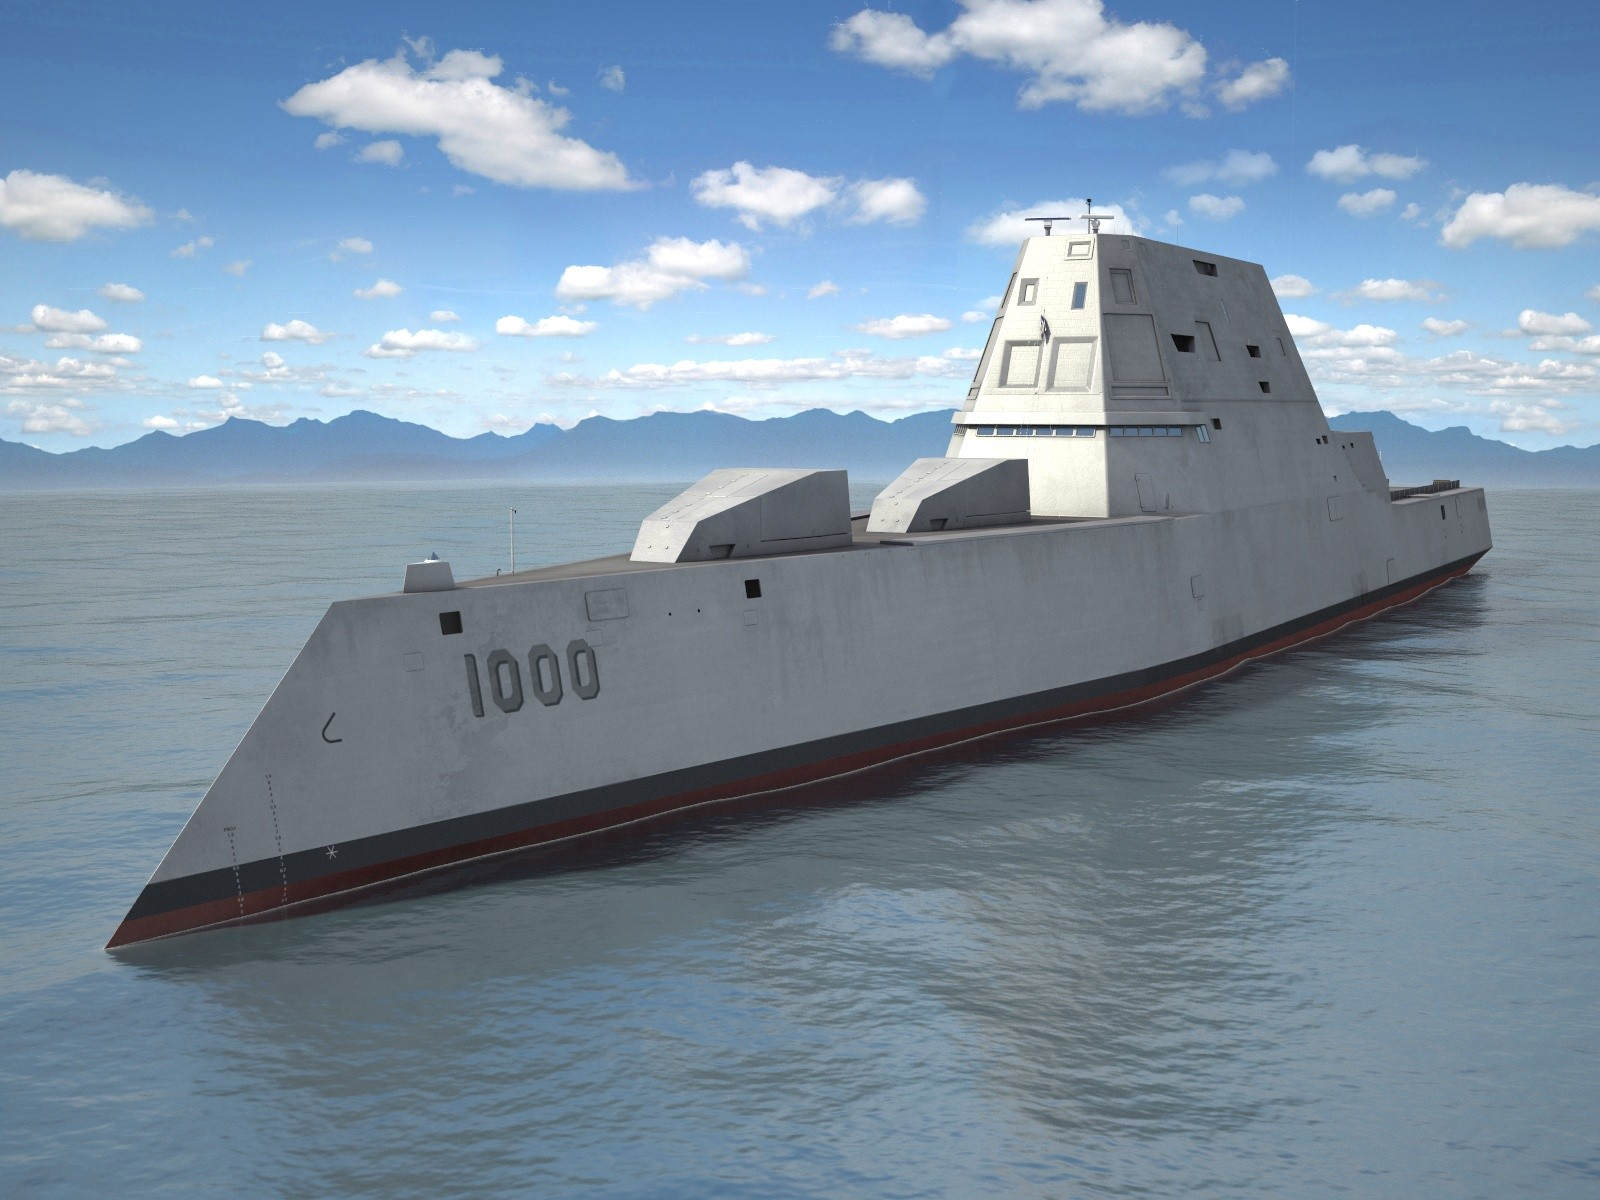 The Zumwalt